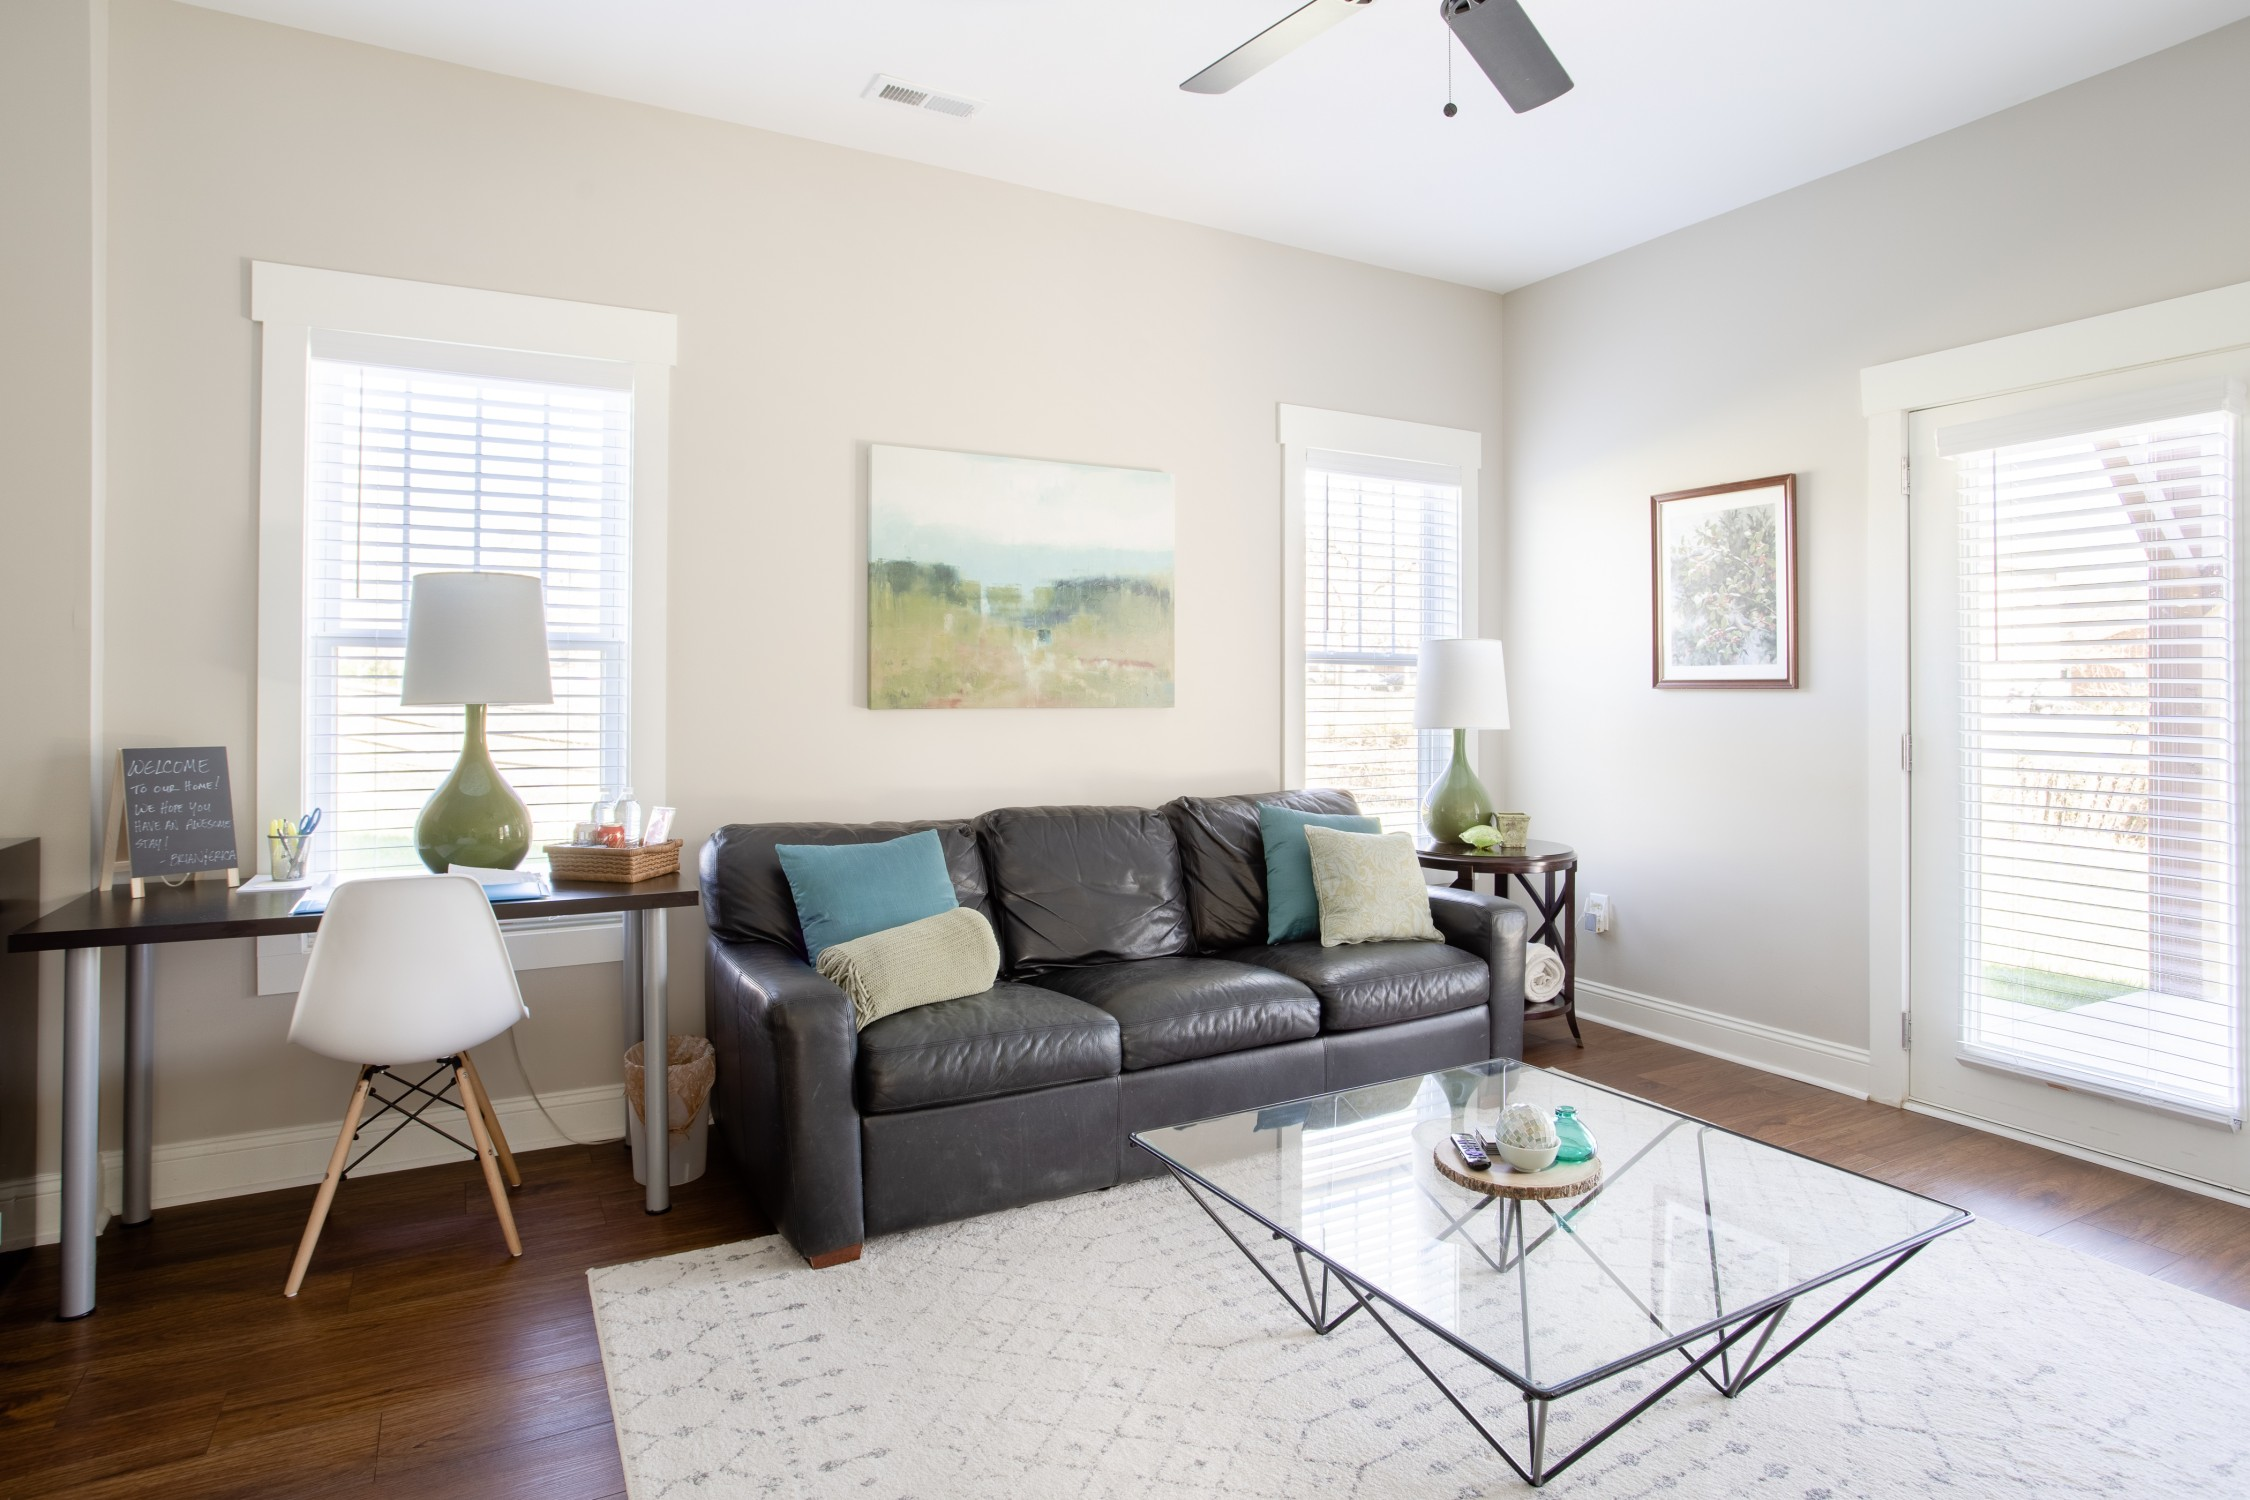 Best Overall Airbnb in Charlotte NC